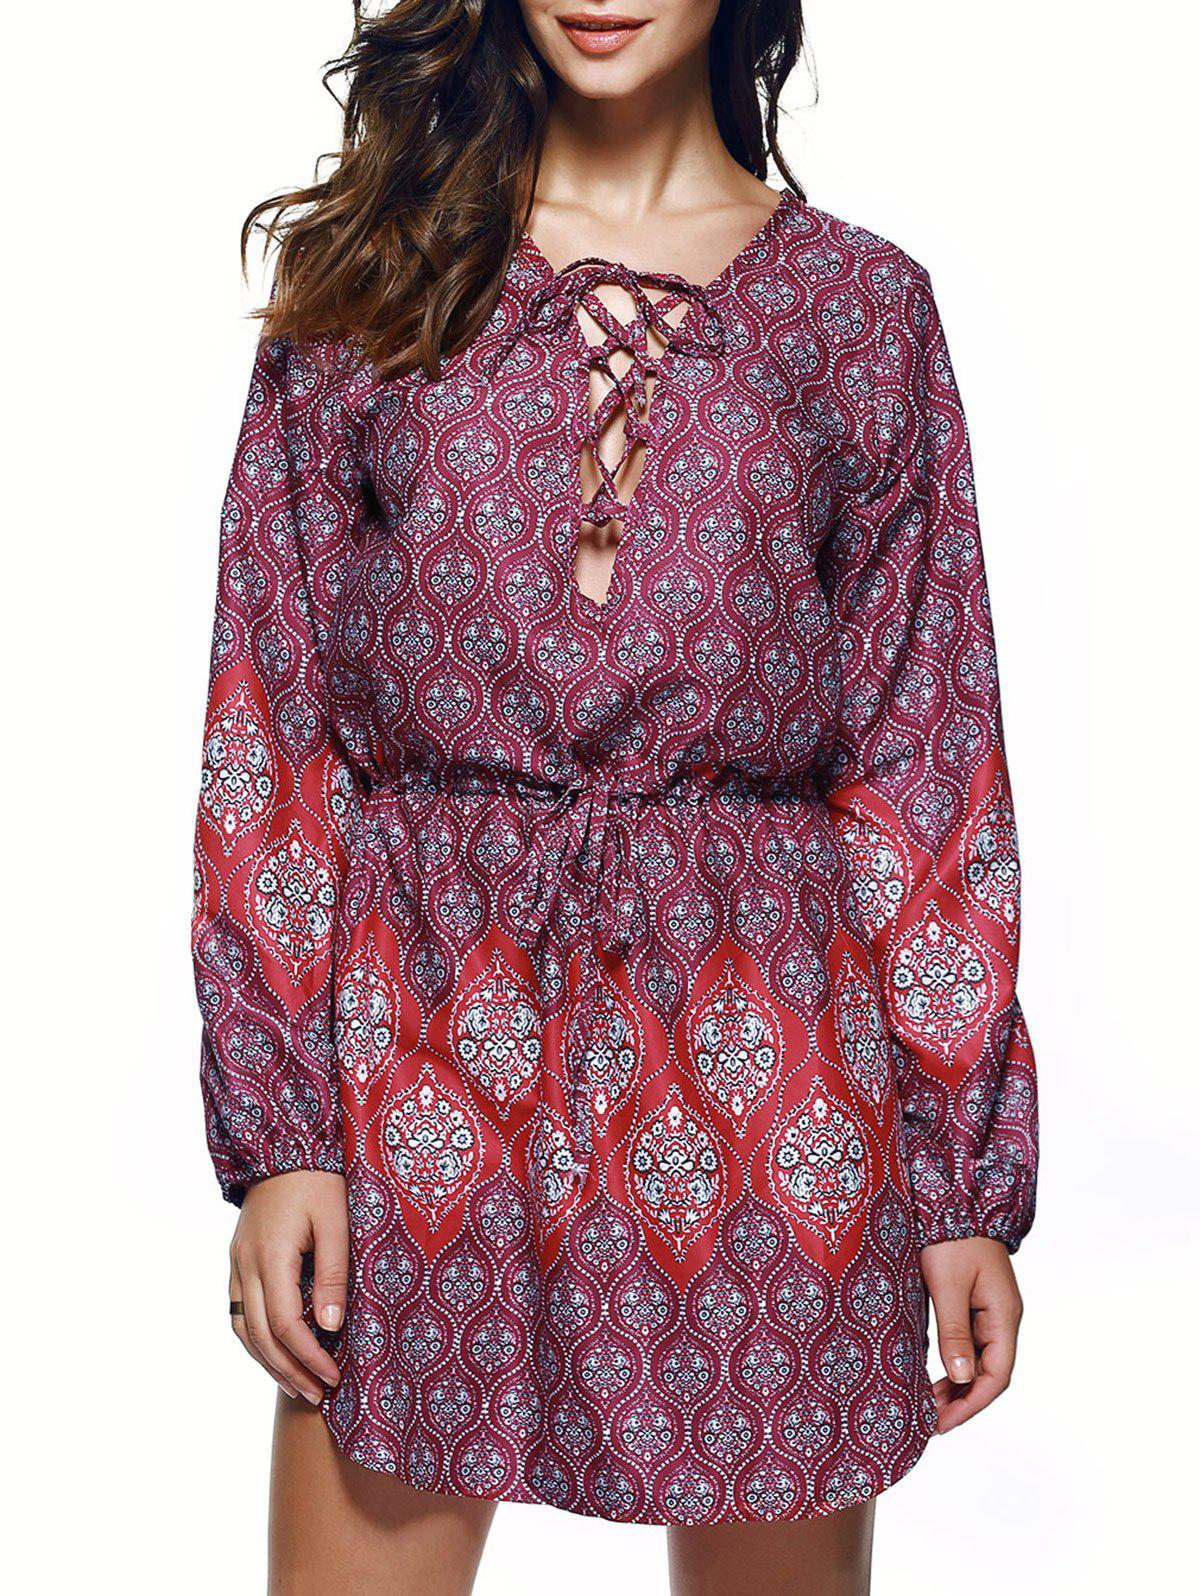 Bohemian Lace Up Drawstring Waist Ethnic Print Long Sleeve Dress - L COLORMIX